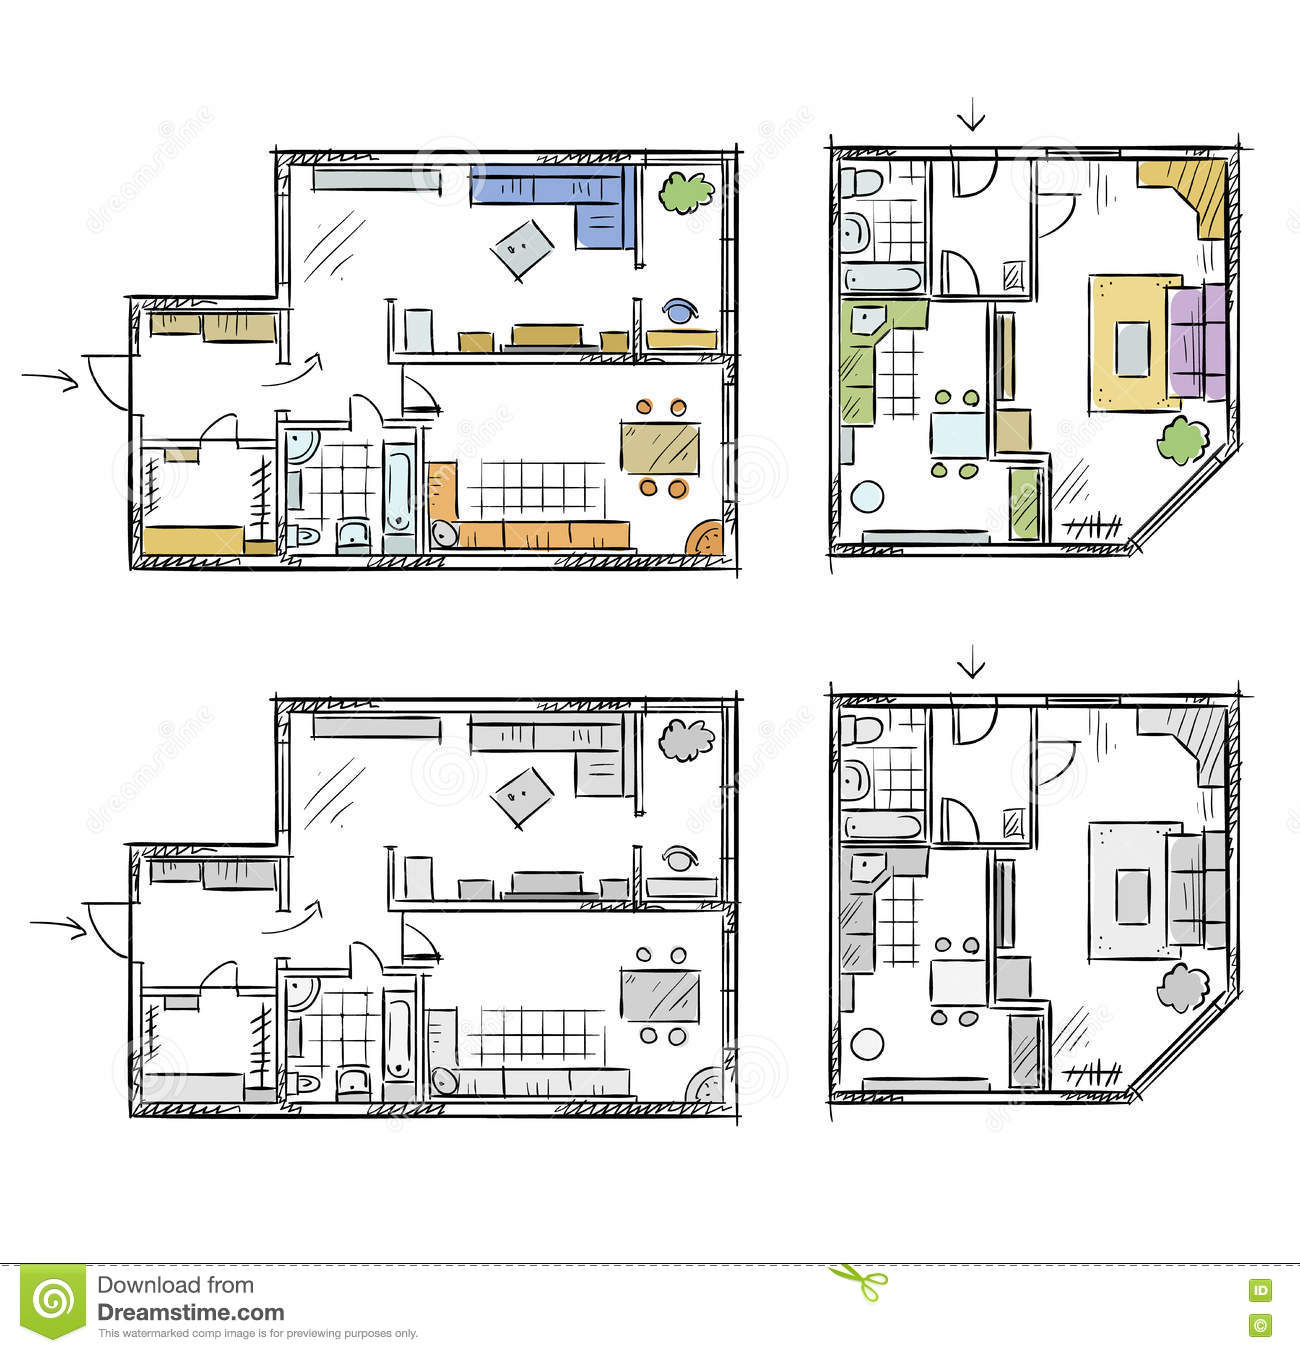 plan d 39 appartement avec des meubles croquis de vecteur illustration de vecteur image 73147210. Black Bedroom Furniture Sets. Home Design Ideas